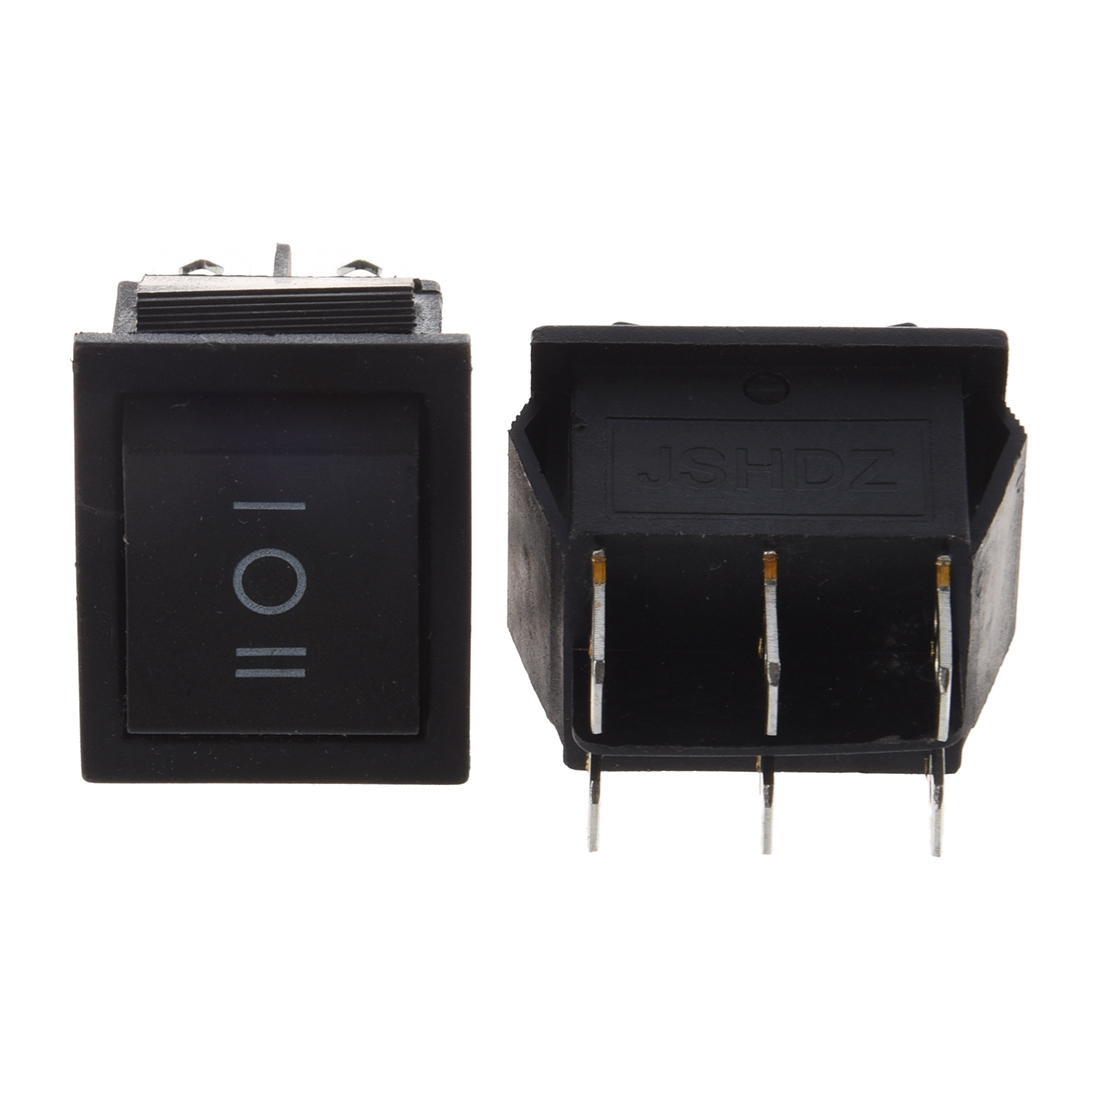 Popular Brand 2pcs 6 Pin Dpdt On-off-on 3 Position Snap In Rocker Switch 15a/250v 20a/125v Ac Dropshipping Delicious In Taste Lighting Accessories Lights & Lighting